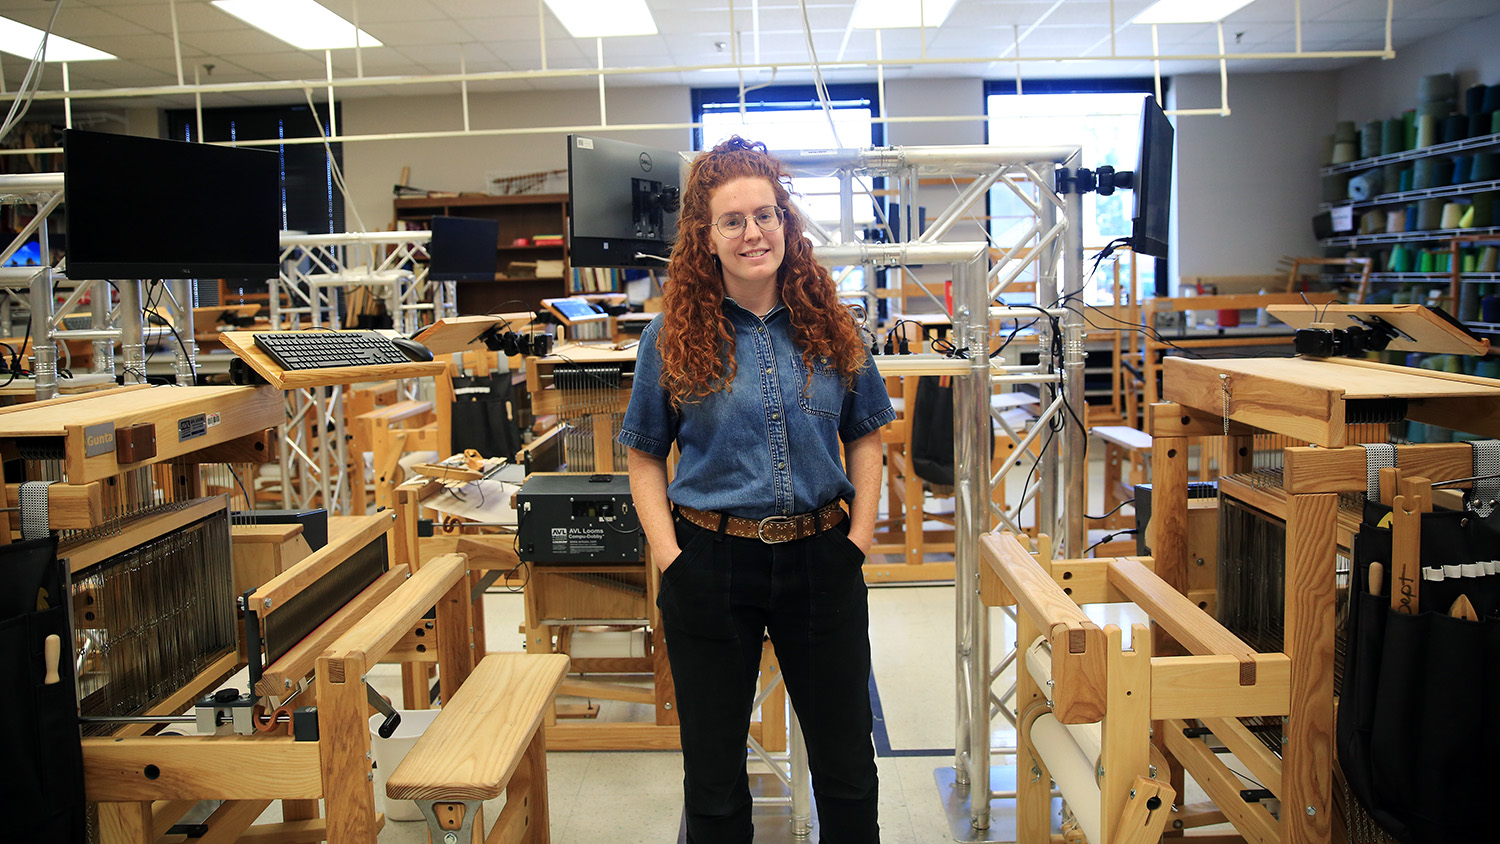 TATM studio and lab technician Bailey Knight stands with hands in pockets in weaving lab, wearing a denim shirt and black pants.